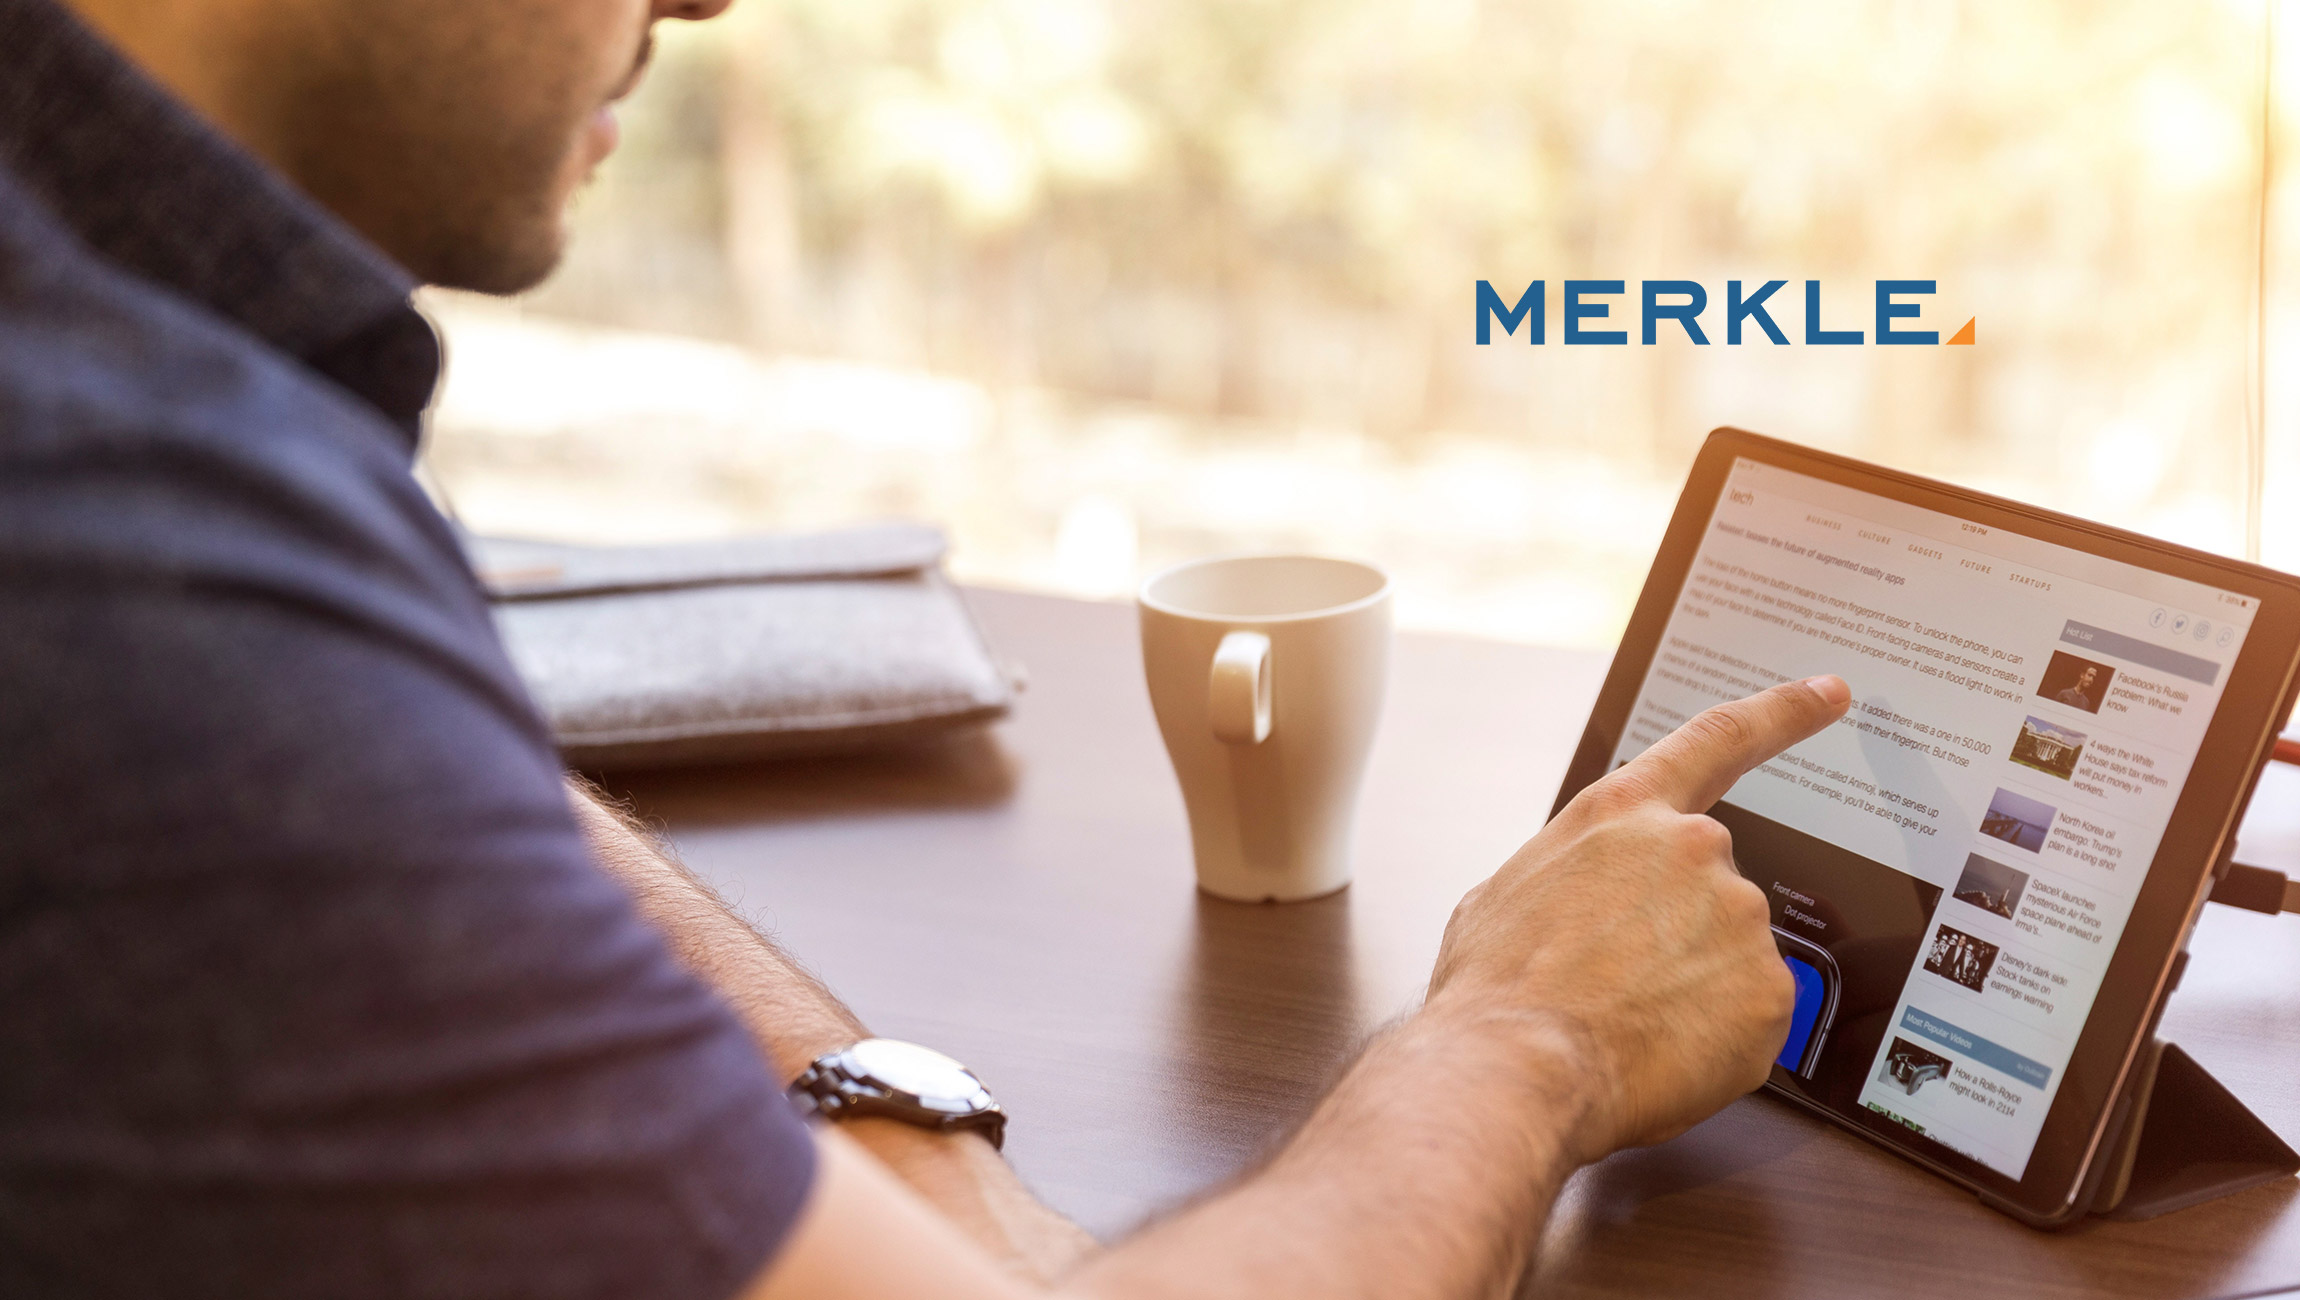 Merkle CRM 4.0 Arrives to Transform Data-Driven Digital Marketing and Commerce